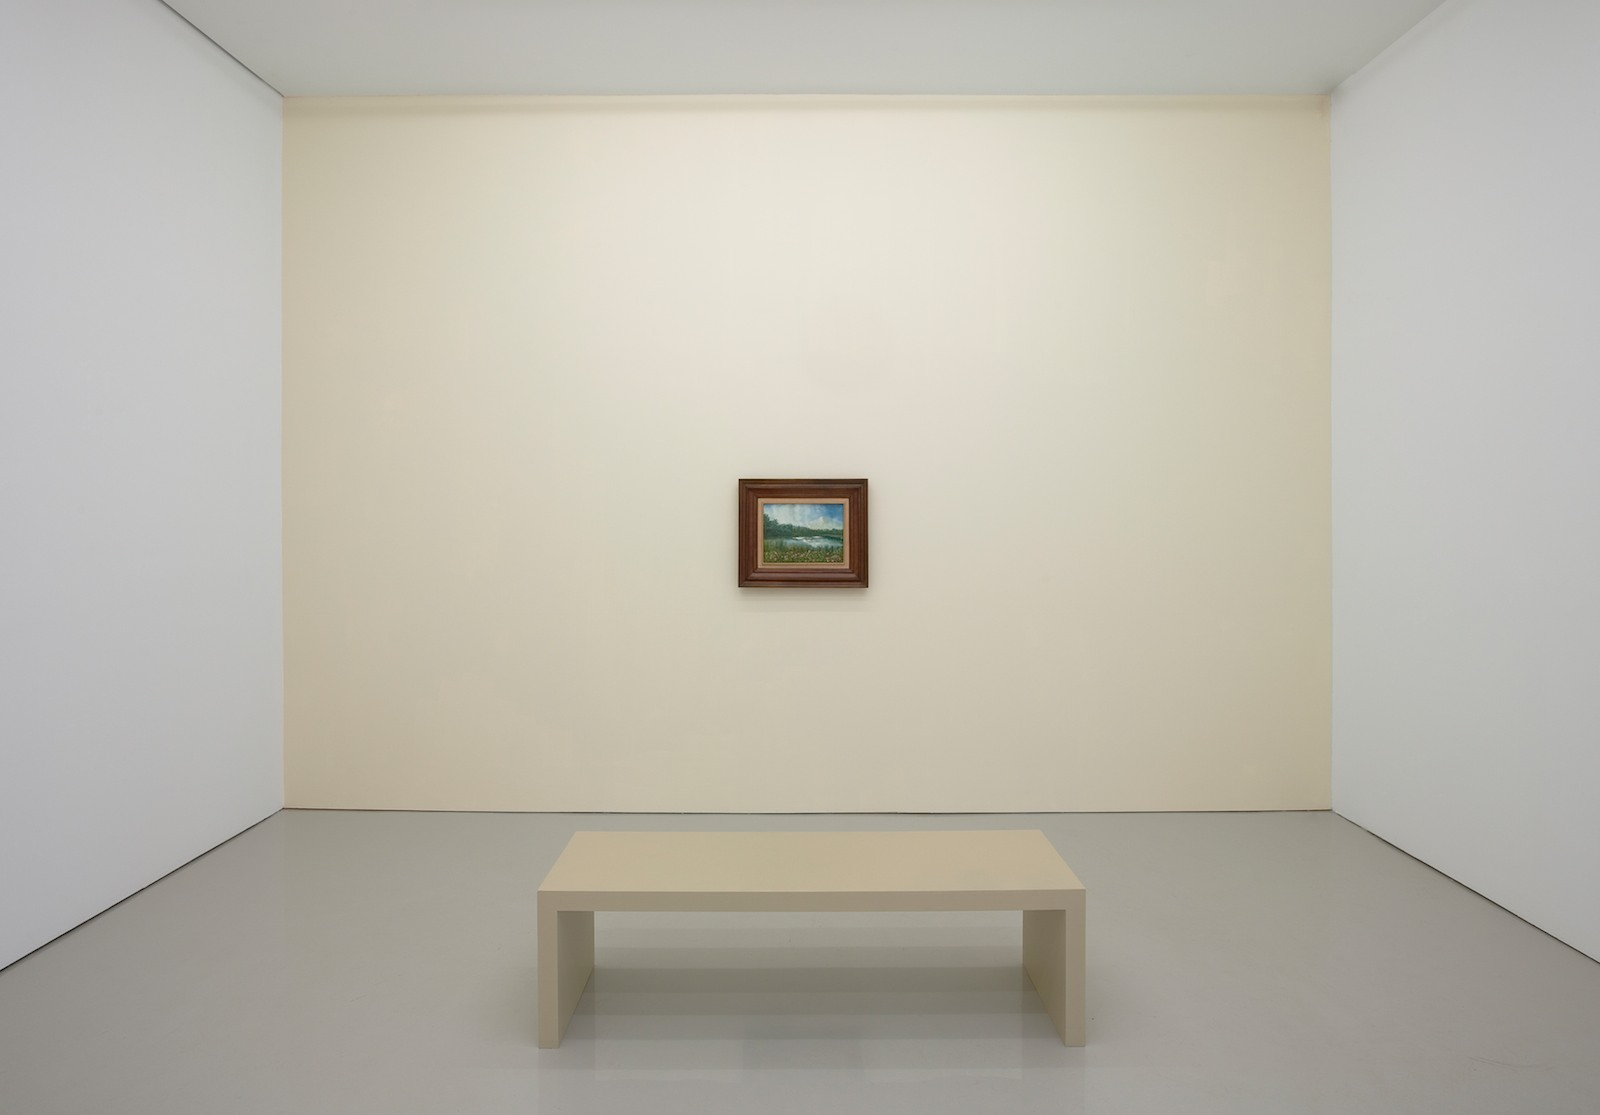 Installation view, Moving a Mountain, 2008, found painting, photograph, framed text, photo 152.4 x 182.9 cm, painting 52.4 x 62.5 cm, framed text 64.1 x 56.2 cm, variable installation, unique. Installation view, D'Amelio Terras, New York, USA, 2008